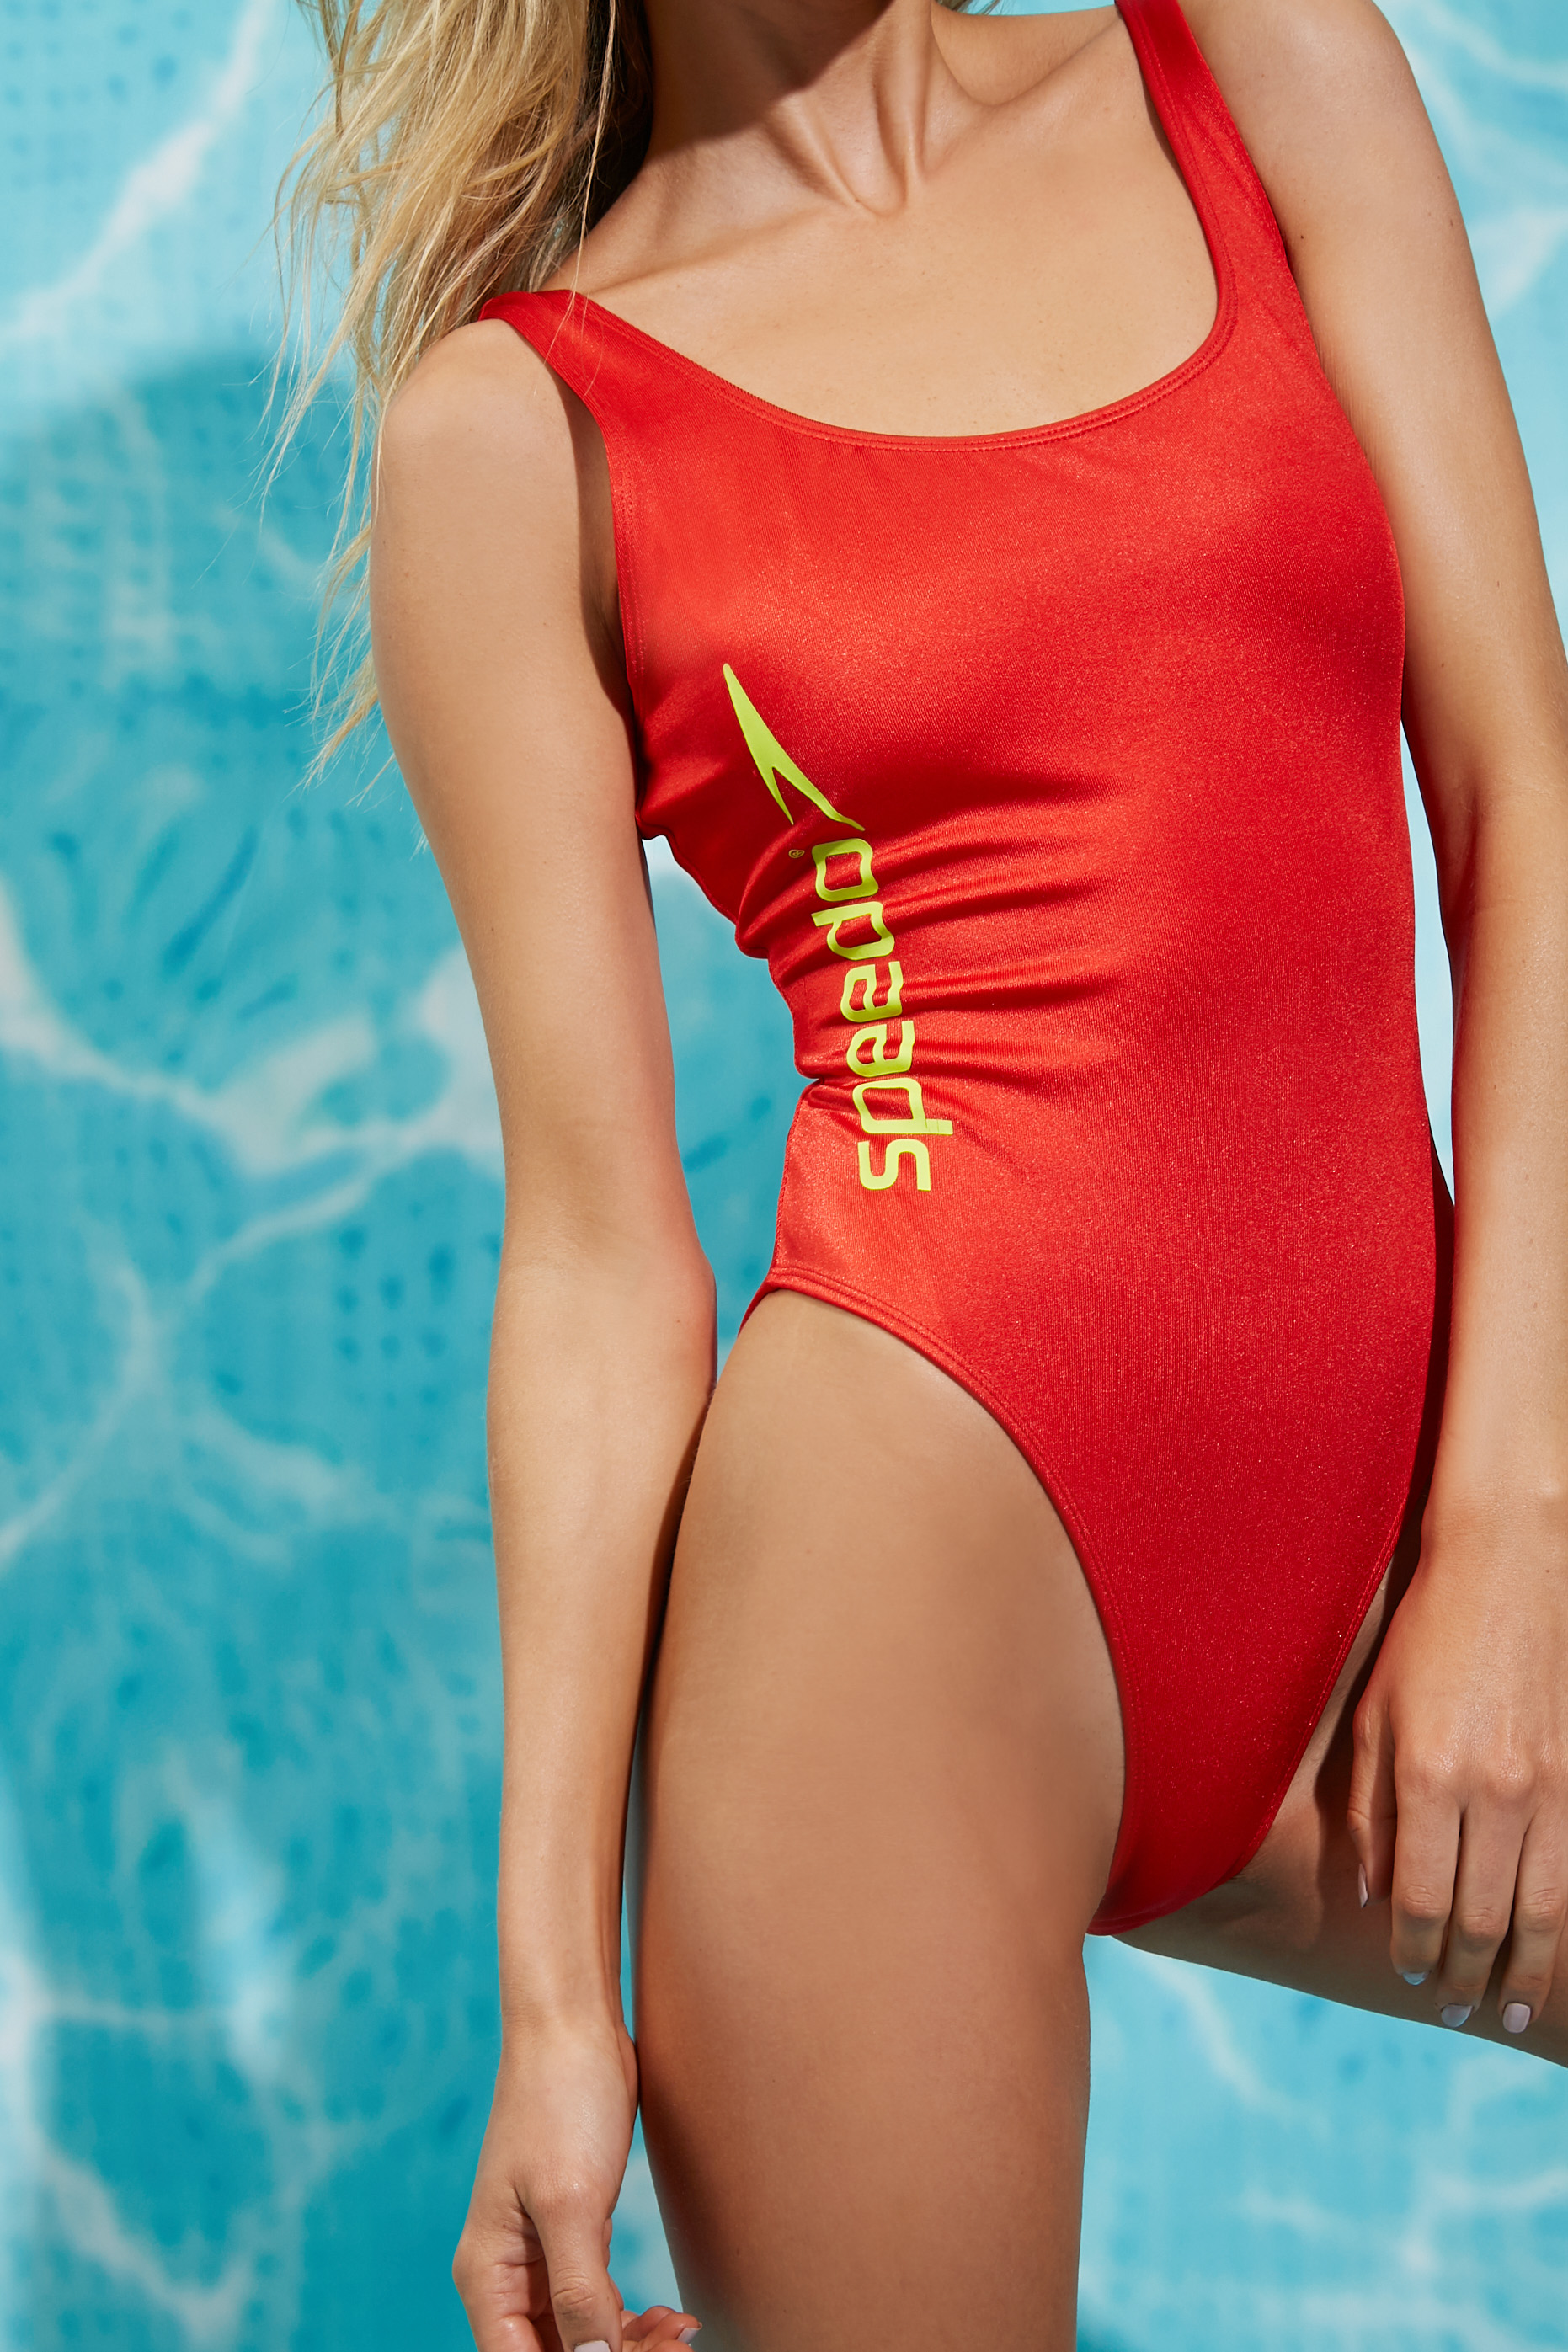 Speedo Graphic Bodysuit - $22.90